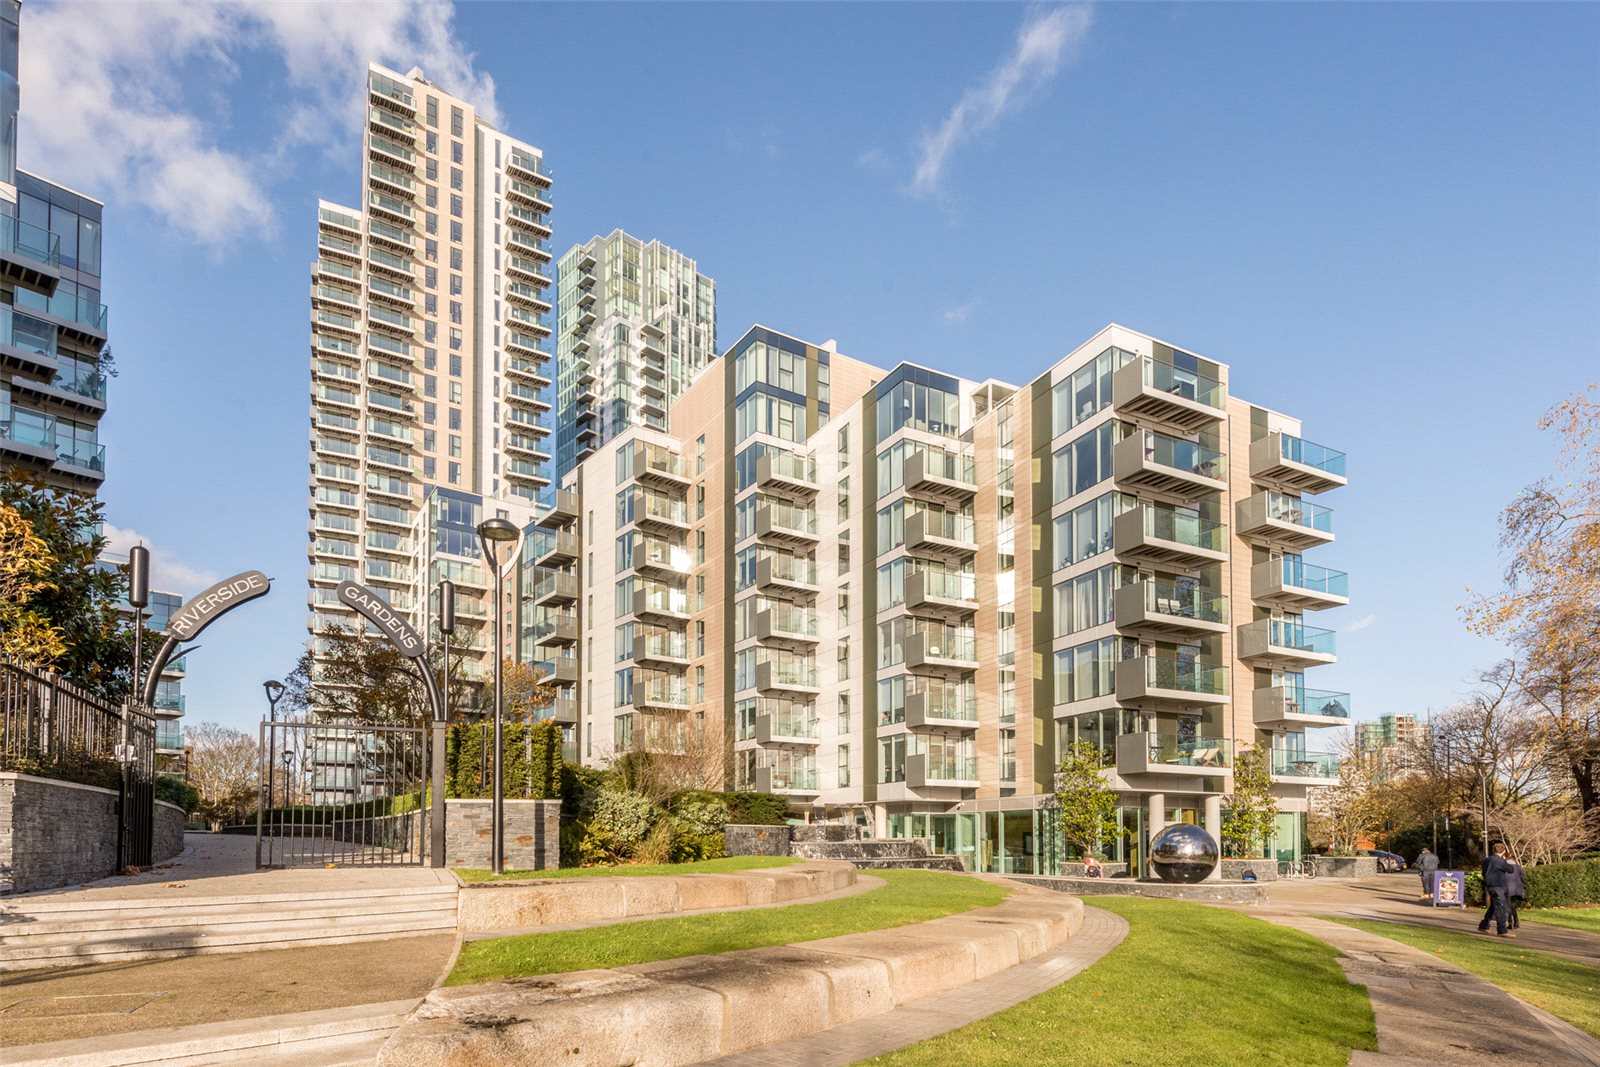 3 Bedrooms Apartment Flat for sale in The Shoreline, The Nature Collection, Woodberry Down, Finsbury Park, N4